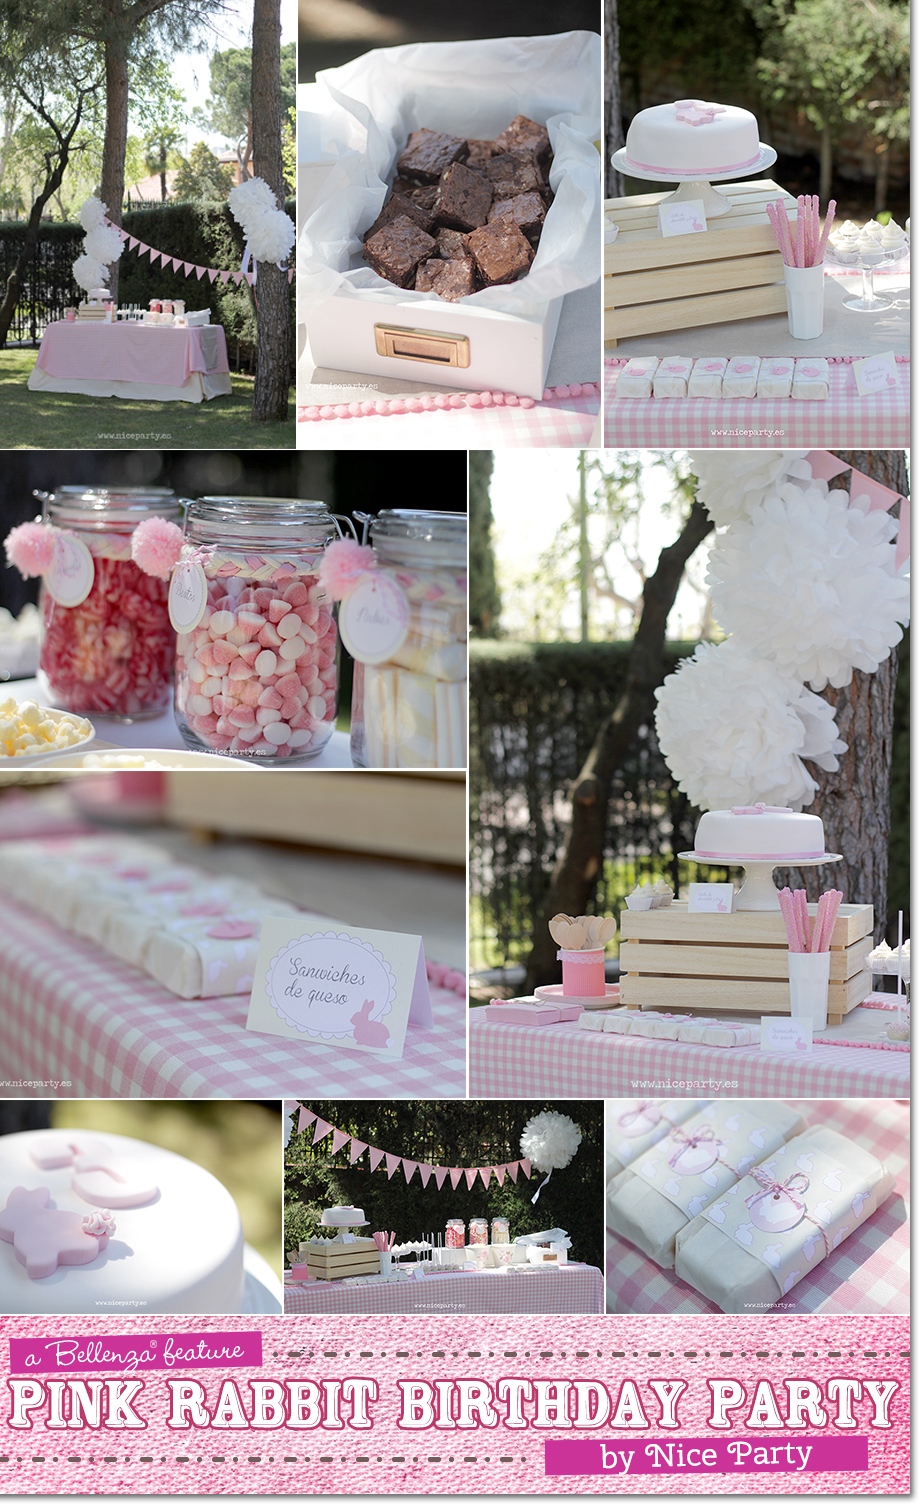 A snack and sweets table for a pink rabbit birthday theme.